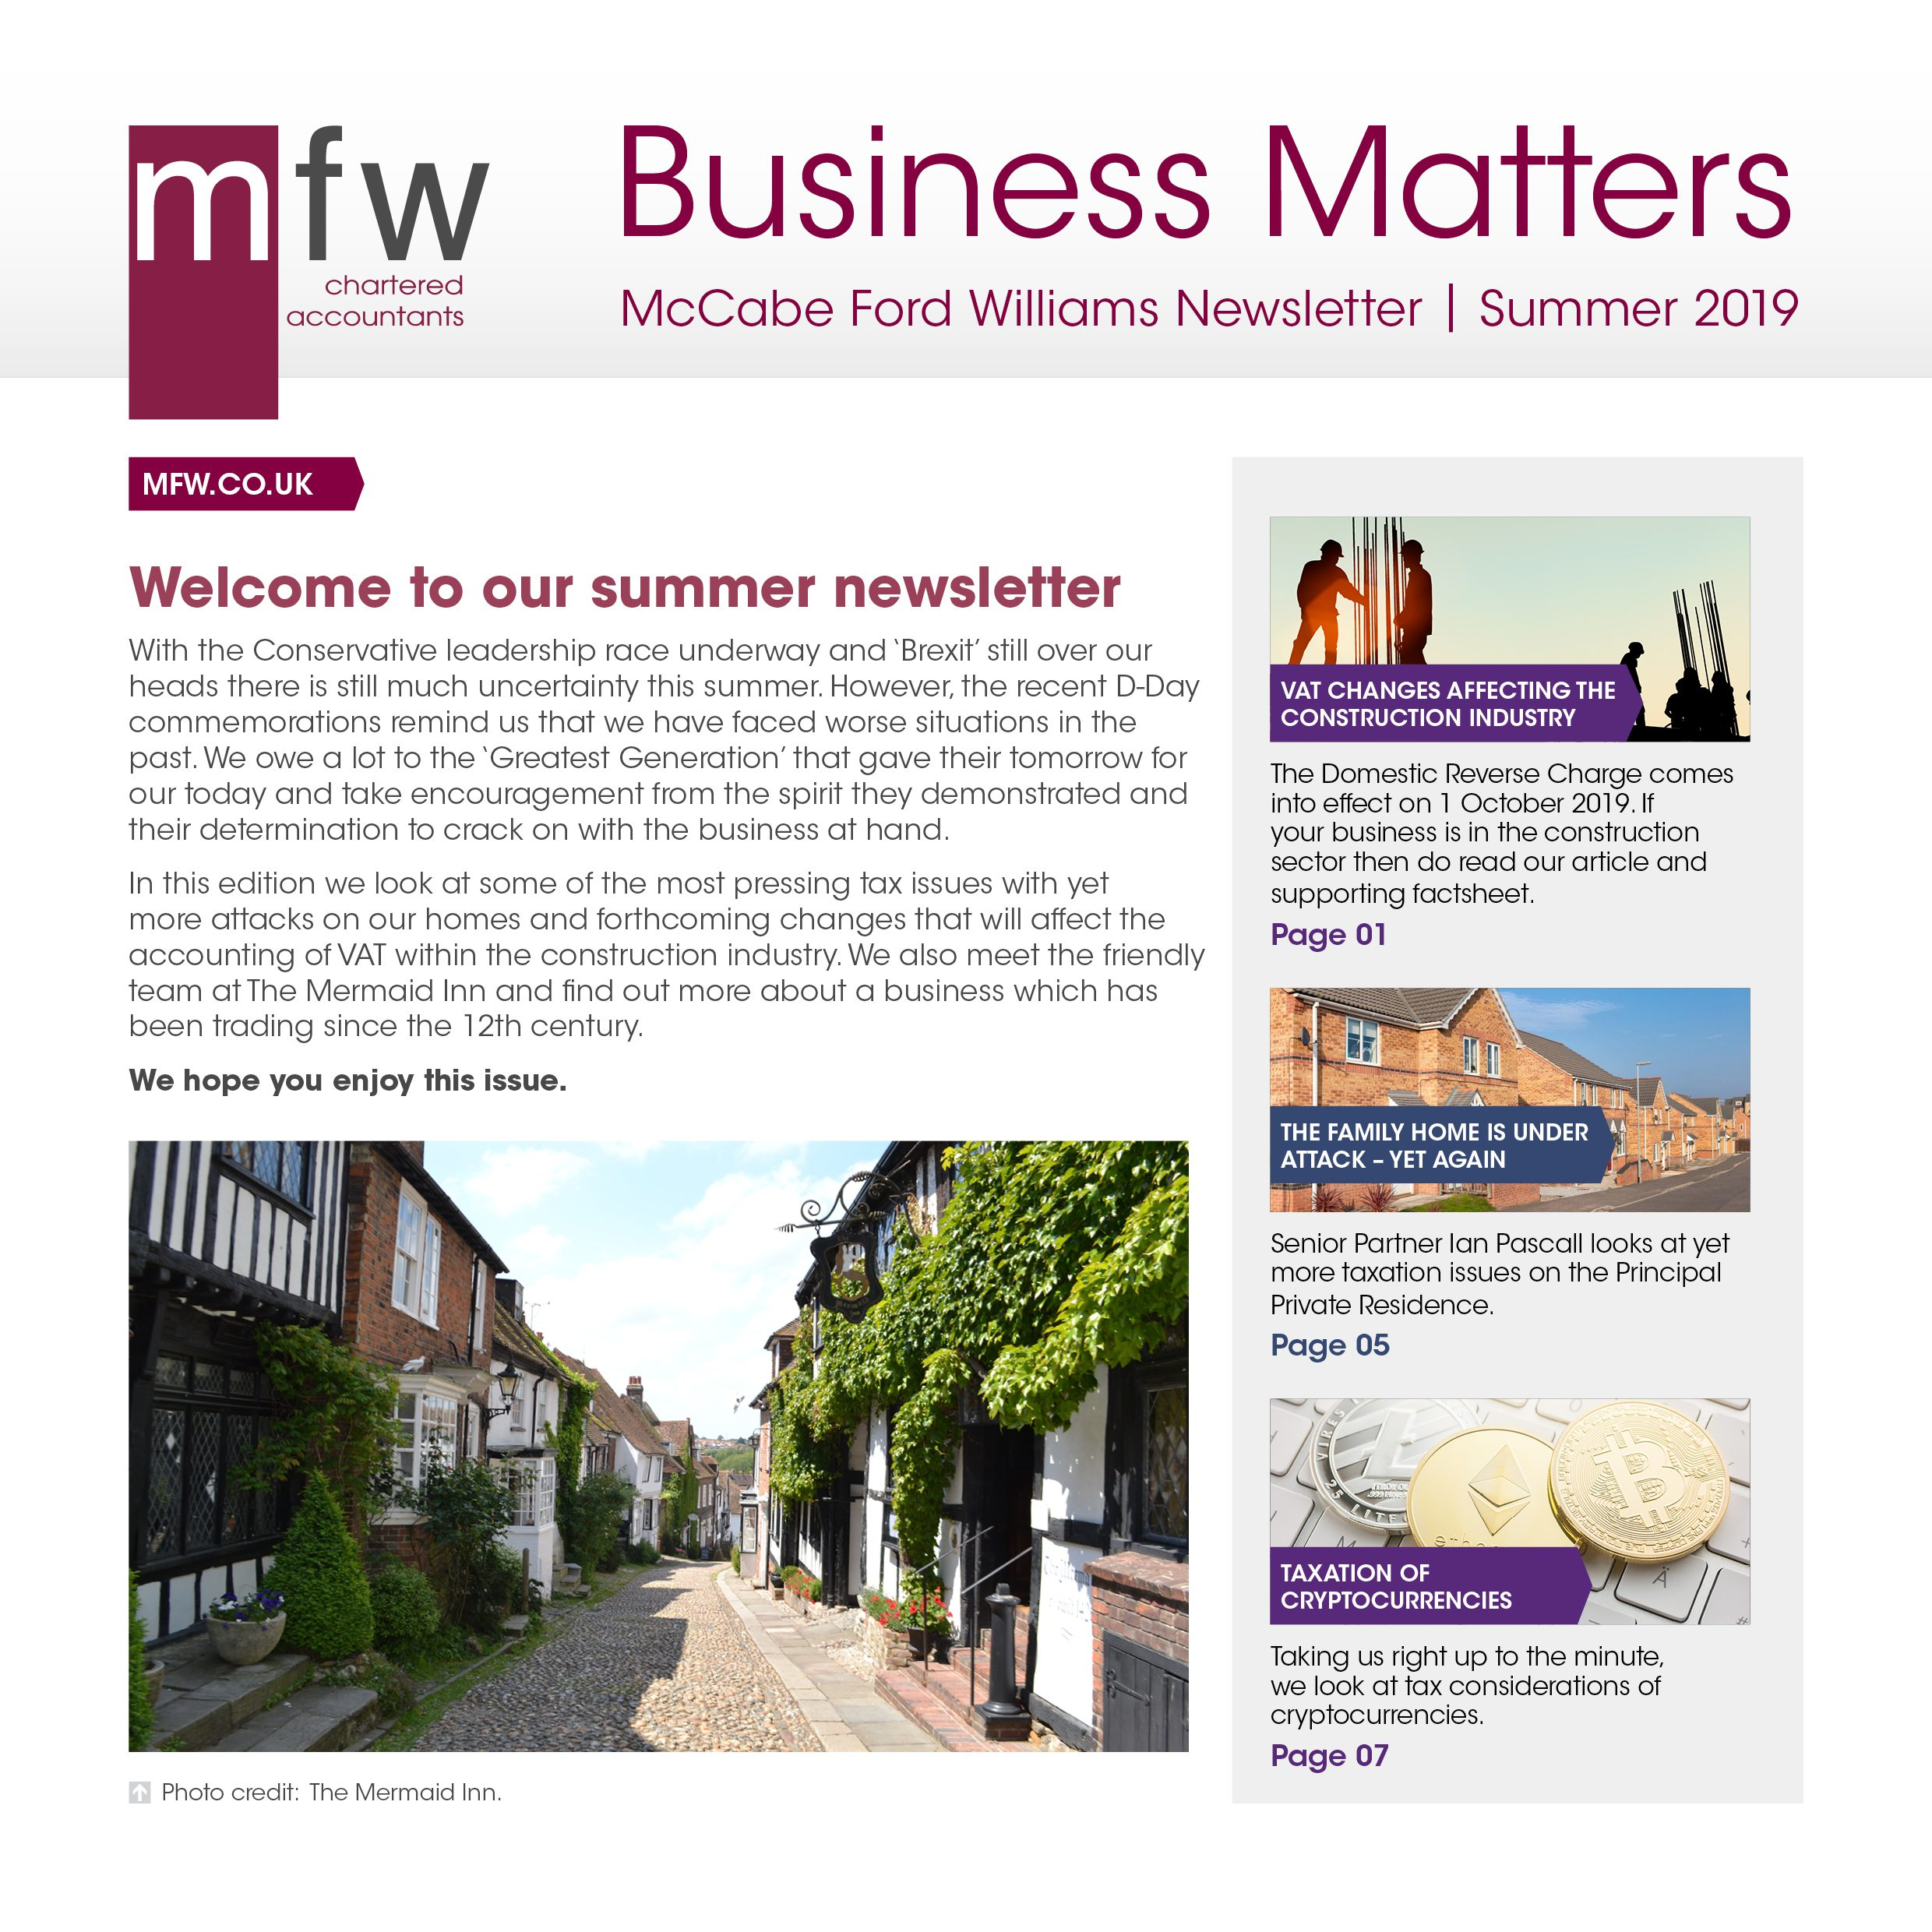 MFW Business Matters newsletter summer 2019 edition